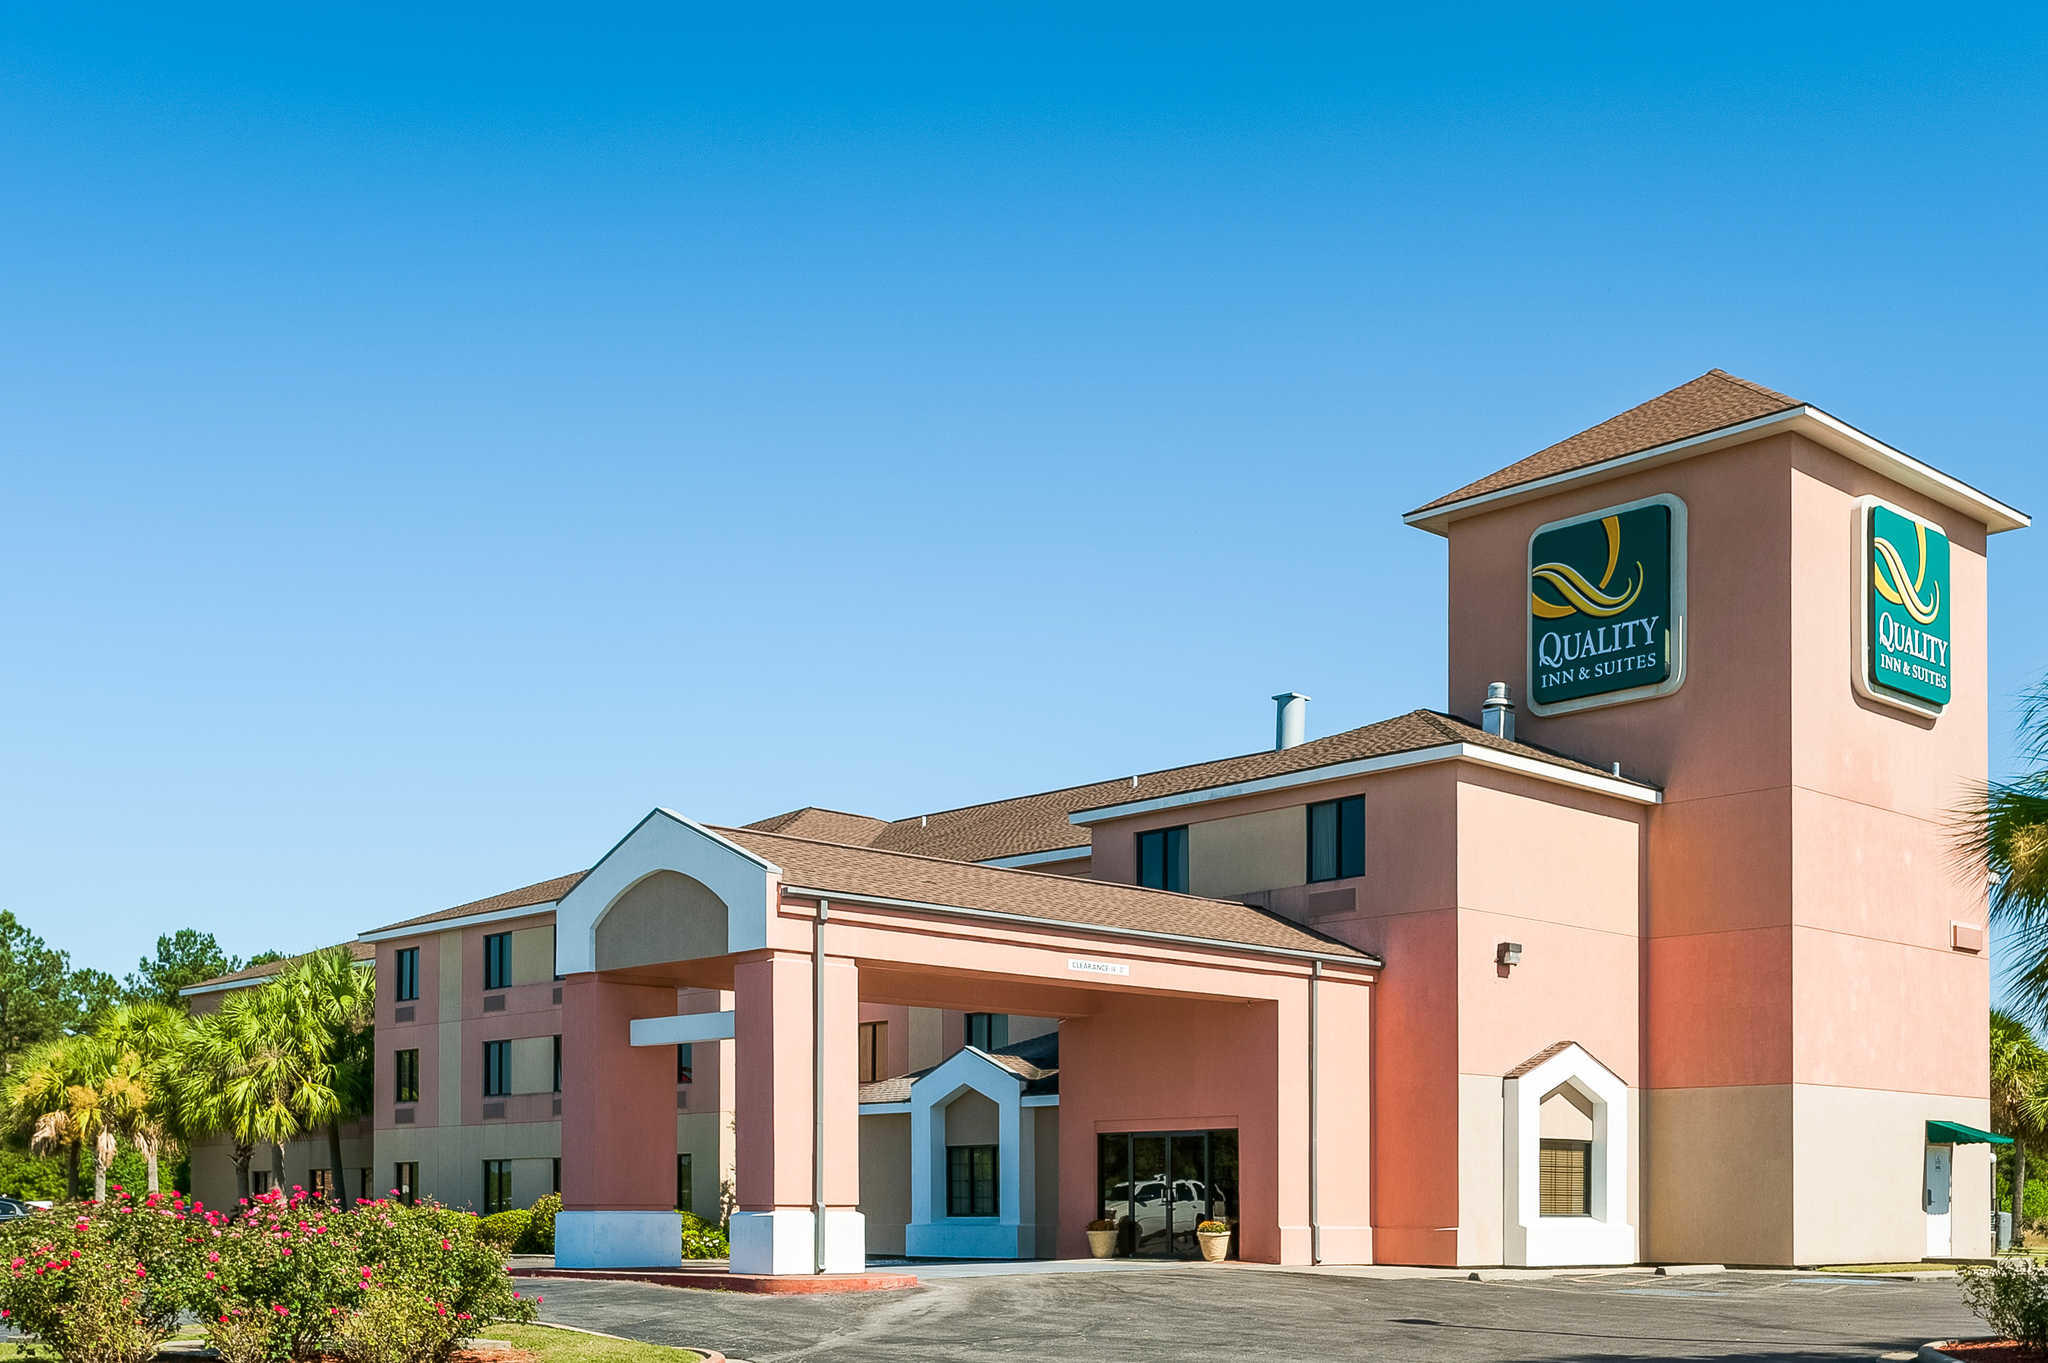 Quality inn suites coupons lake charles la near me for Hotels 8 near me